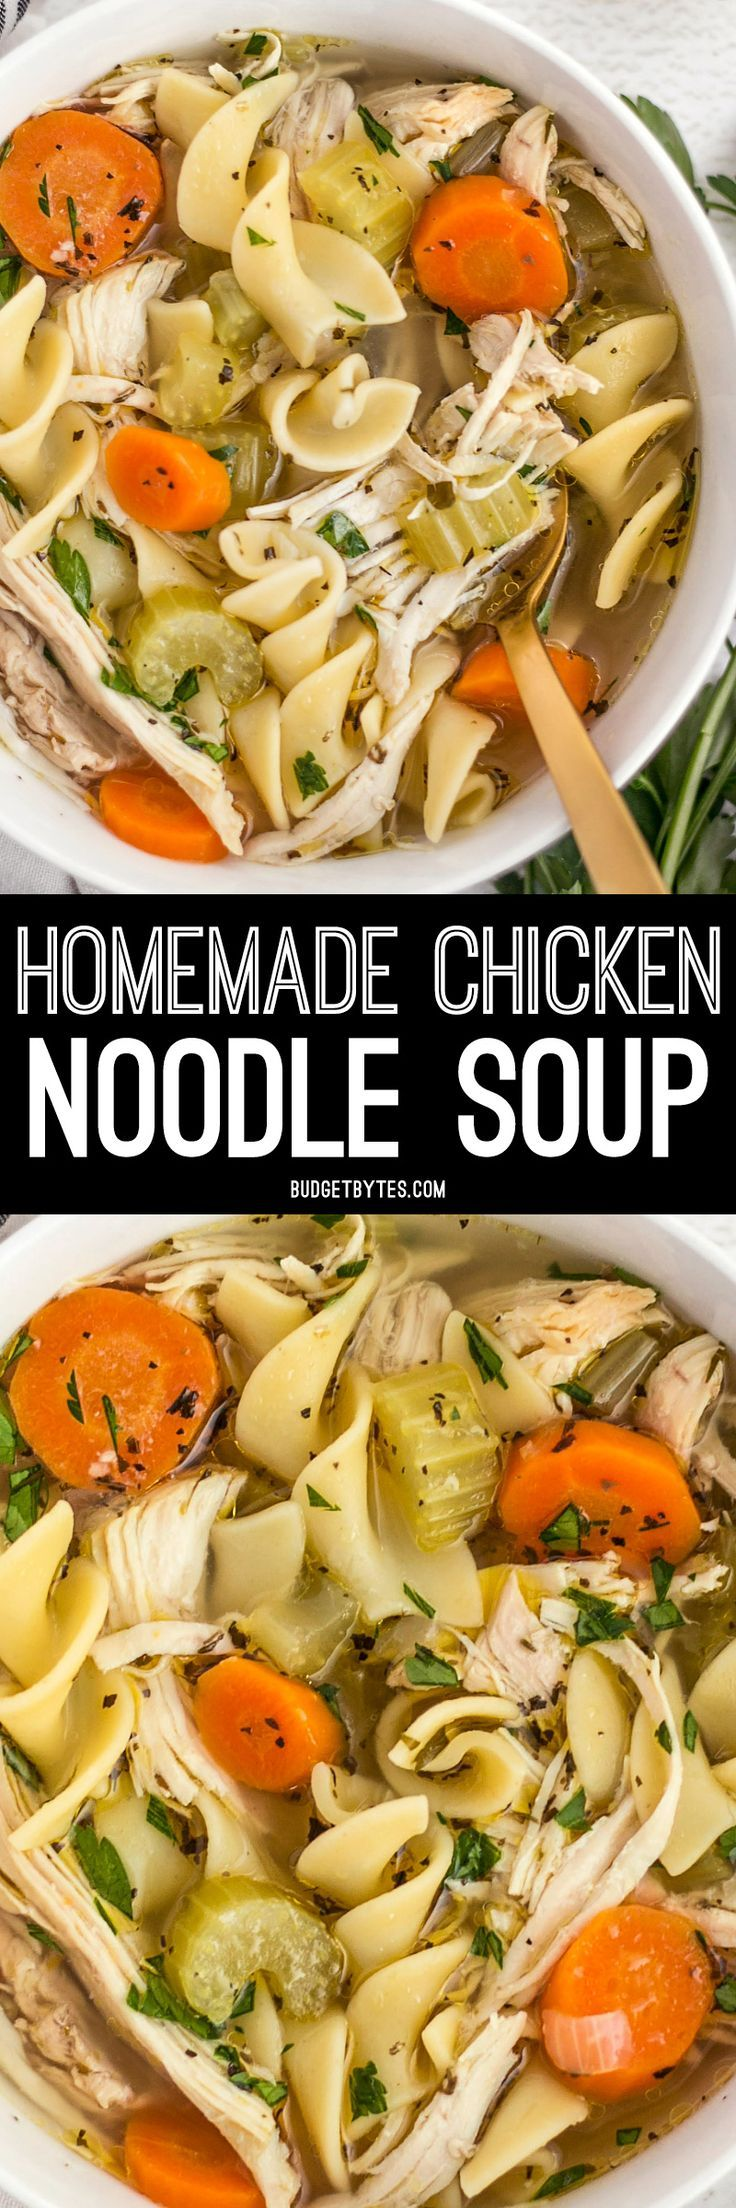 Homemade chicken noodle soup recipe egg noodles noodle soup homemade chicken noodle soup forumfinder Images